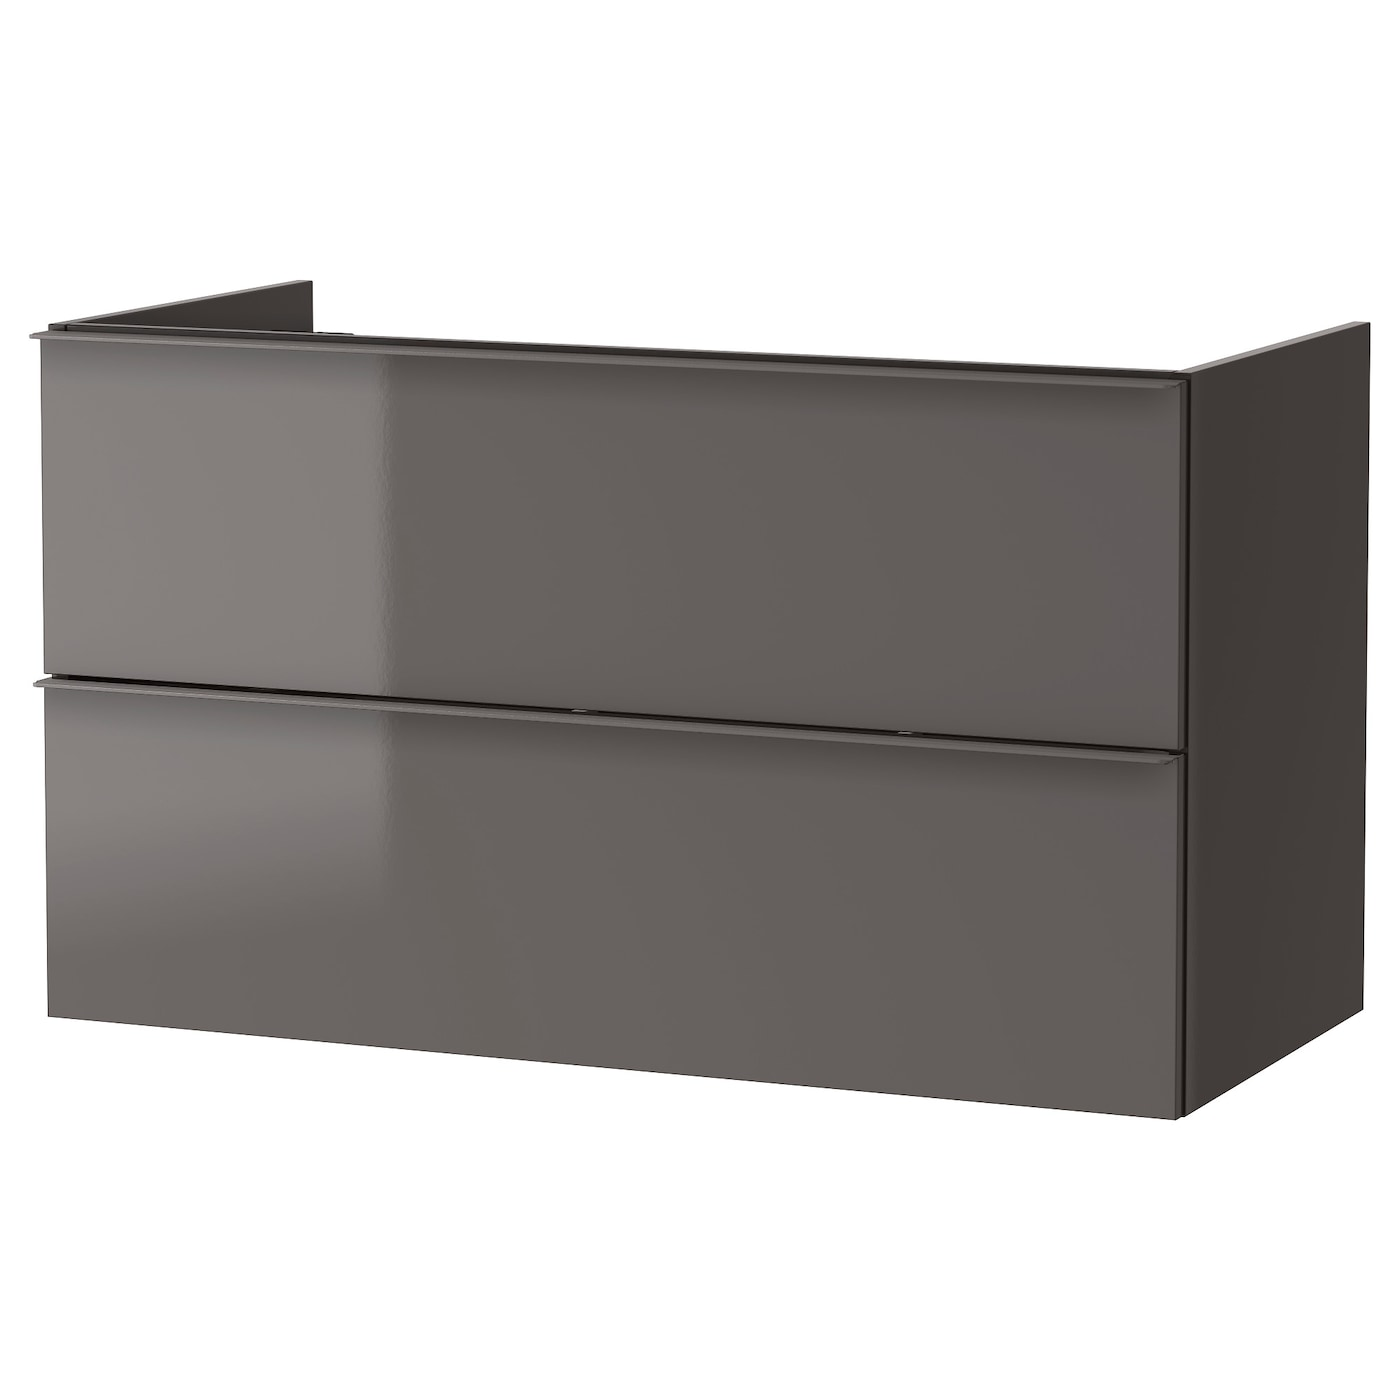 godmorgon wash stand with 2 drawers high gloss grey 100 x 47 x 58 cm ikea. Black Bedroom Furniture Sets. Home Design Ideas